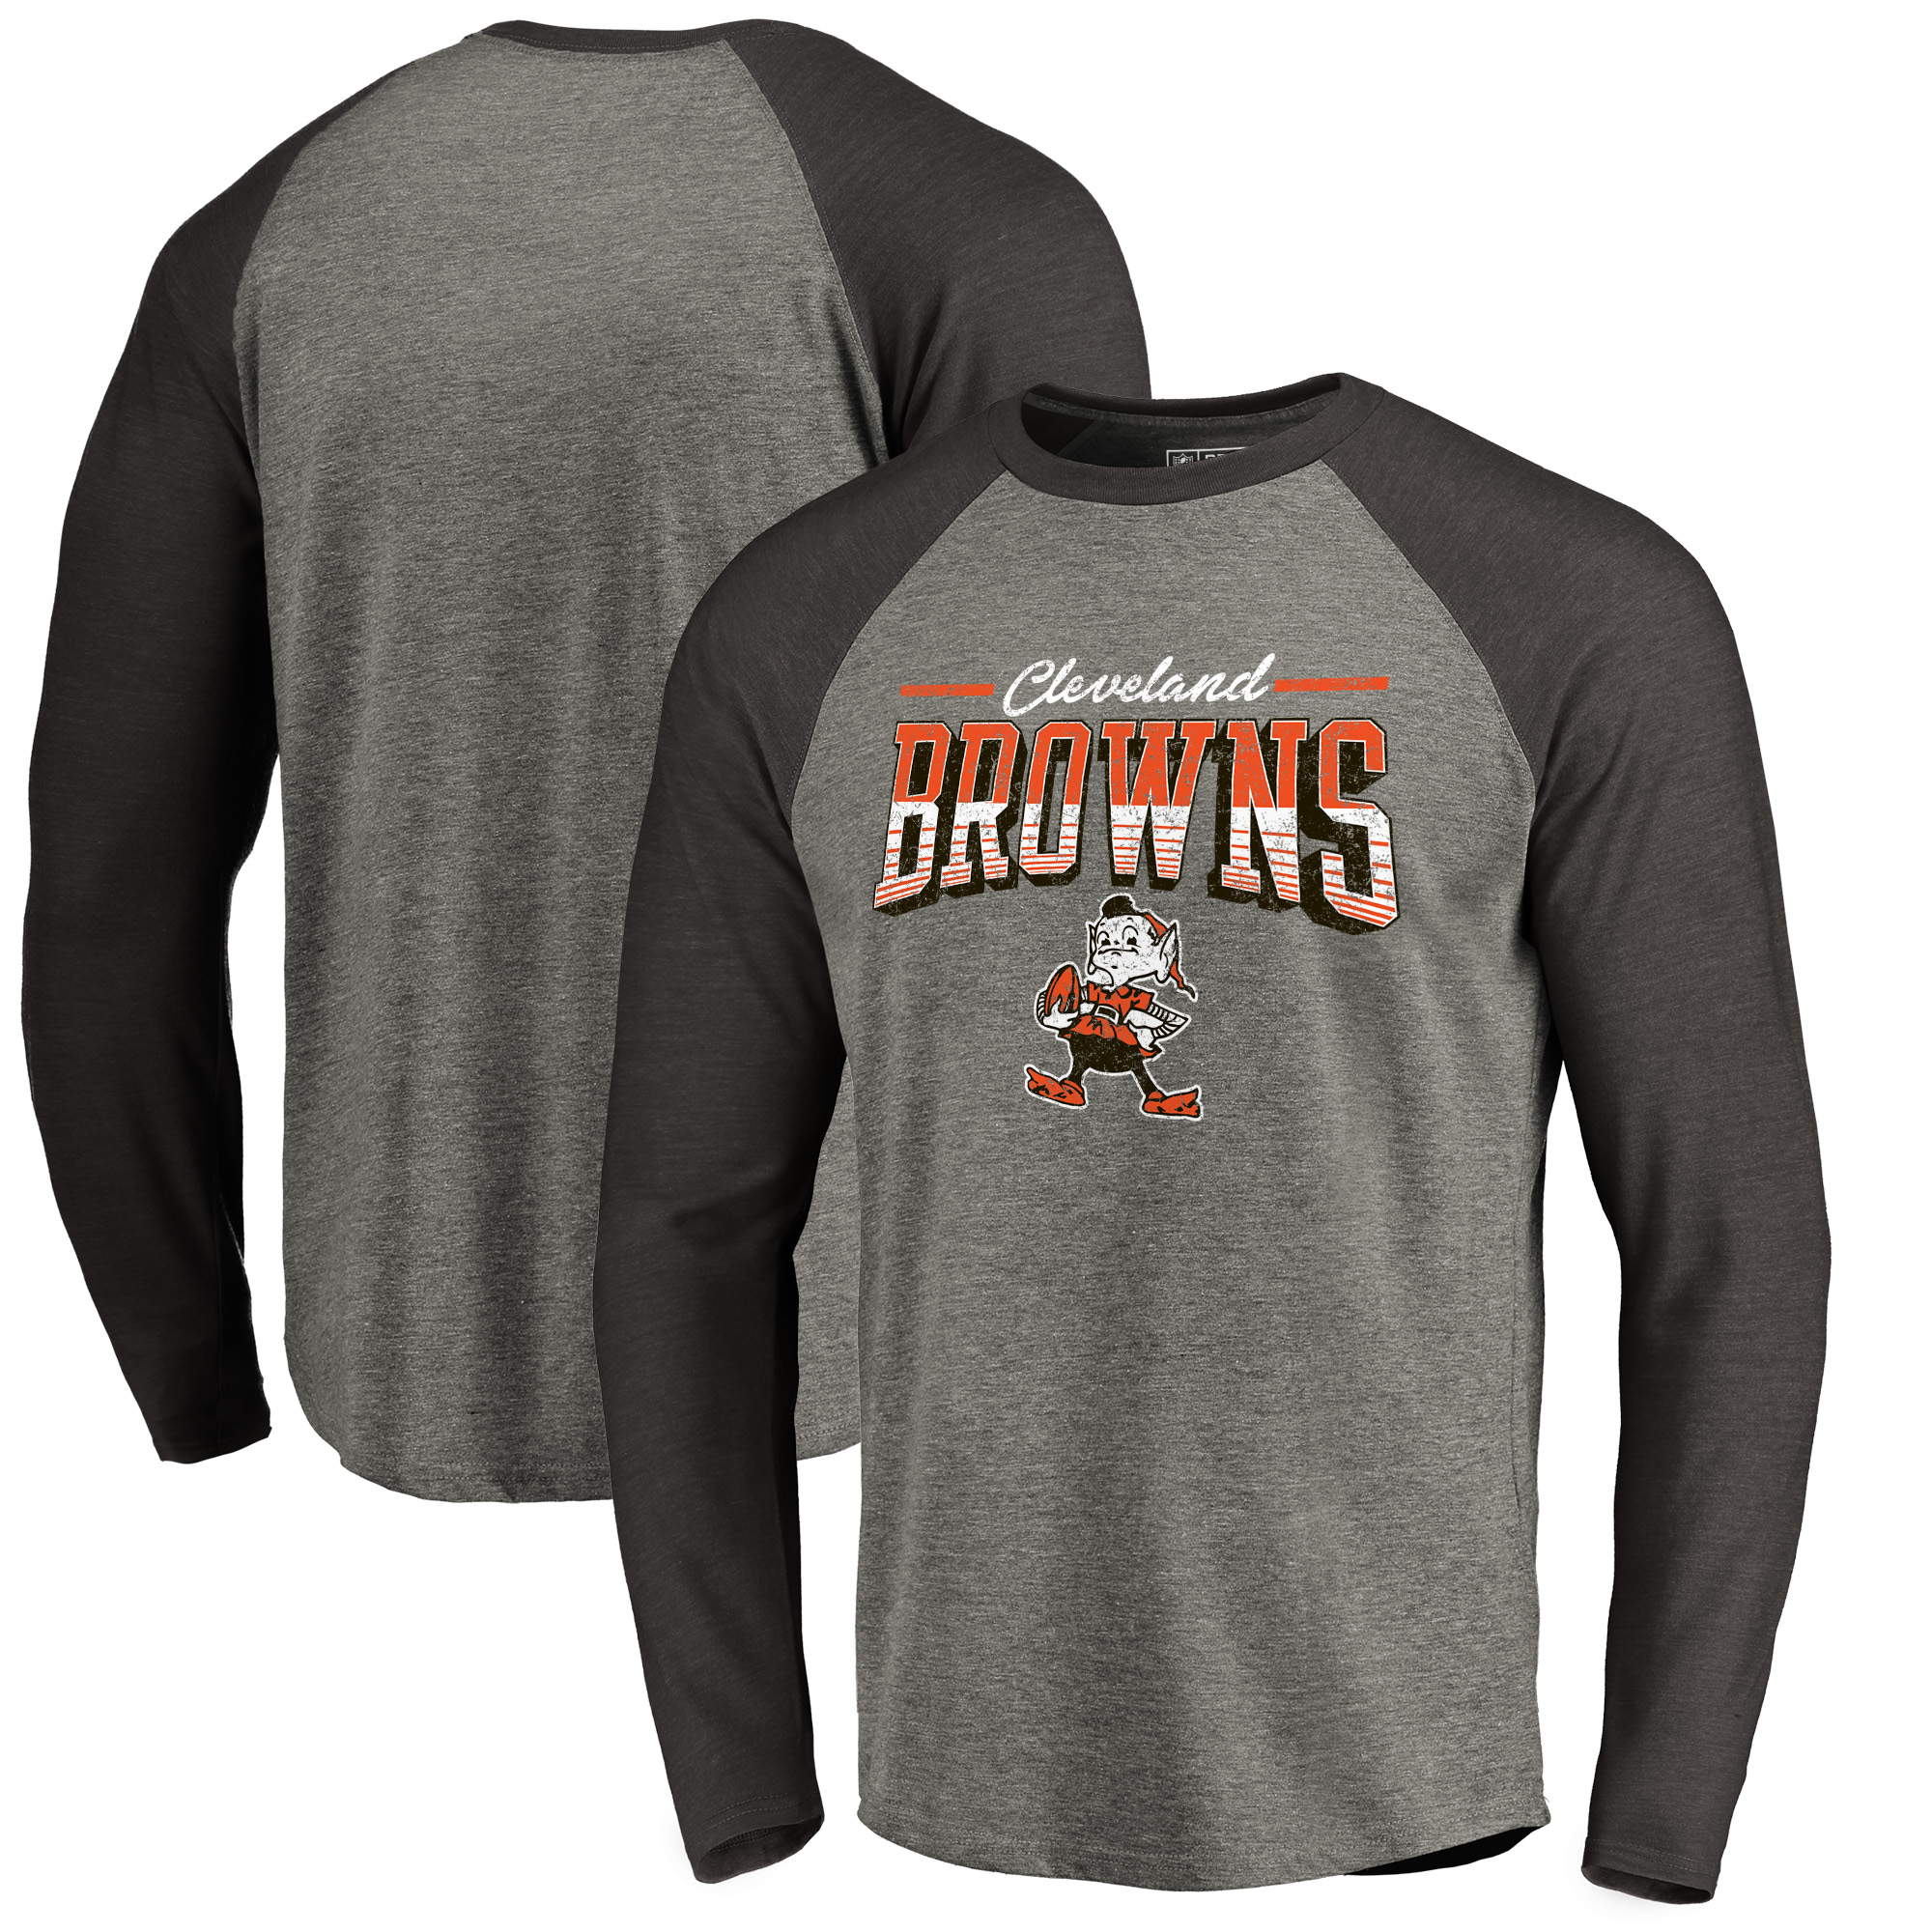 Cleveland Browns NFL Pro Line by Fanatics Branded Throwback Collection Season Ticket Big & Tall Long Sleeve Tri-Blend Raglan T-Shirt - Heathered Gray/Black